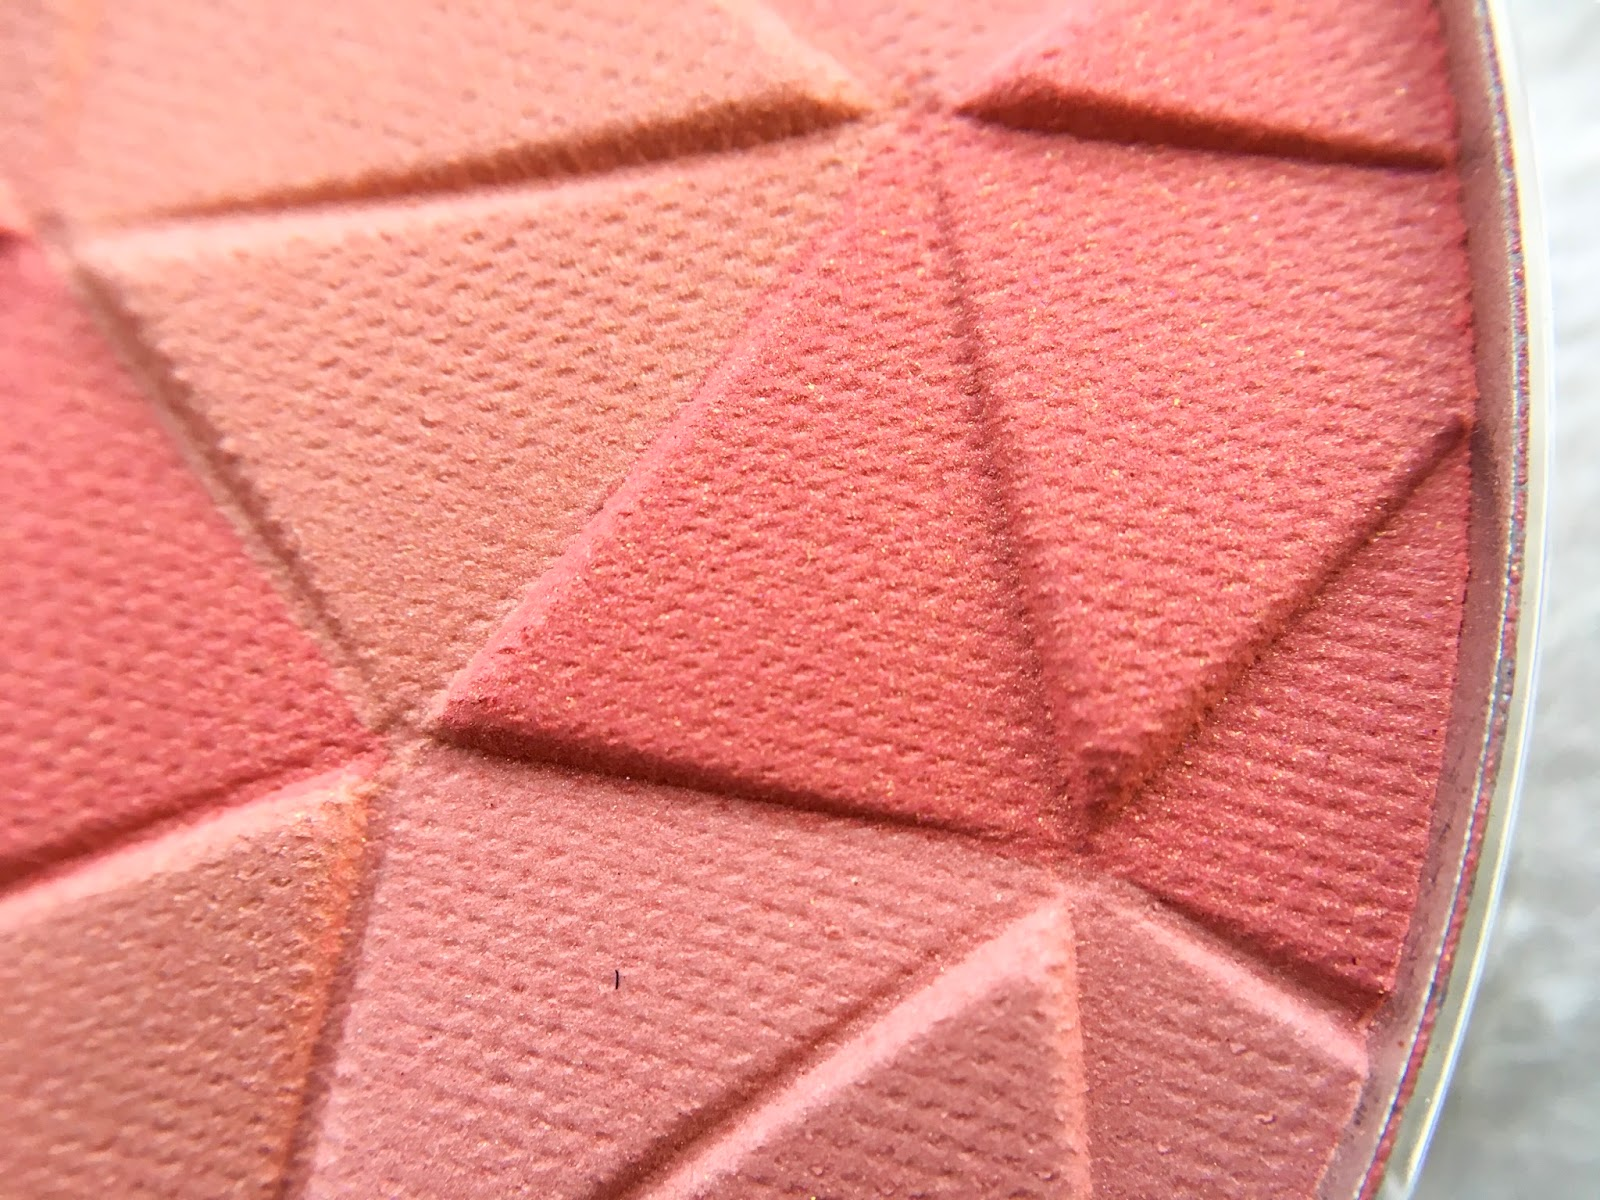 essence cosmetics mosaic blush 20 all you need is pink, essence mosaic blush, essence cosmetics mosaic blush all you need is pink swatch